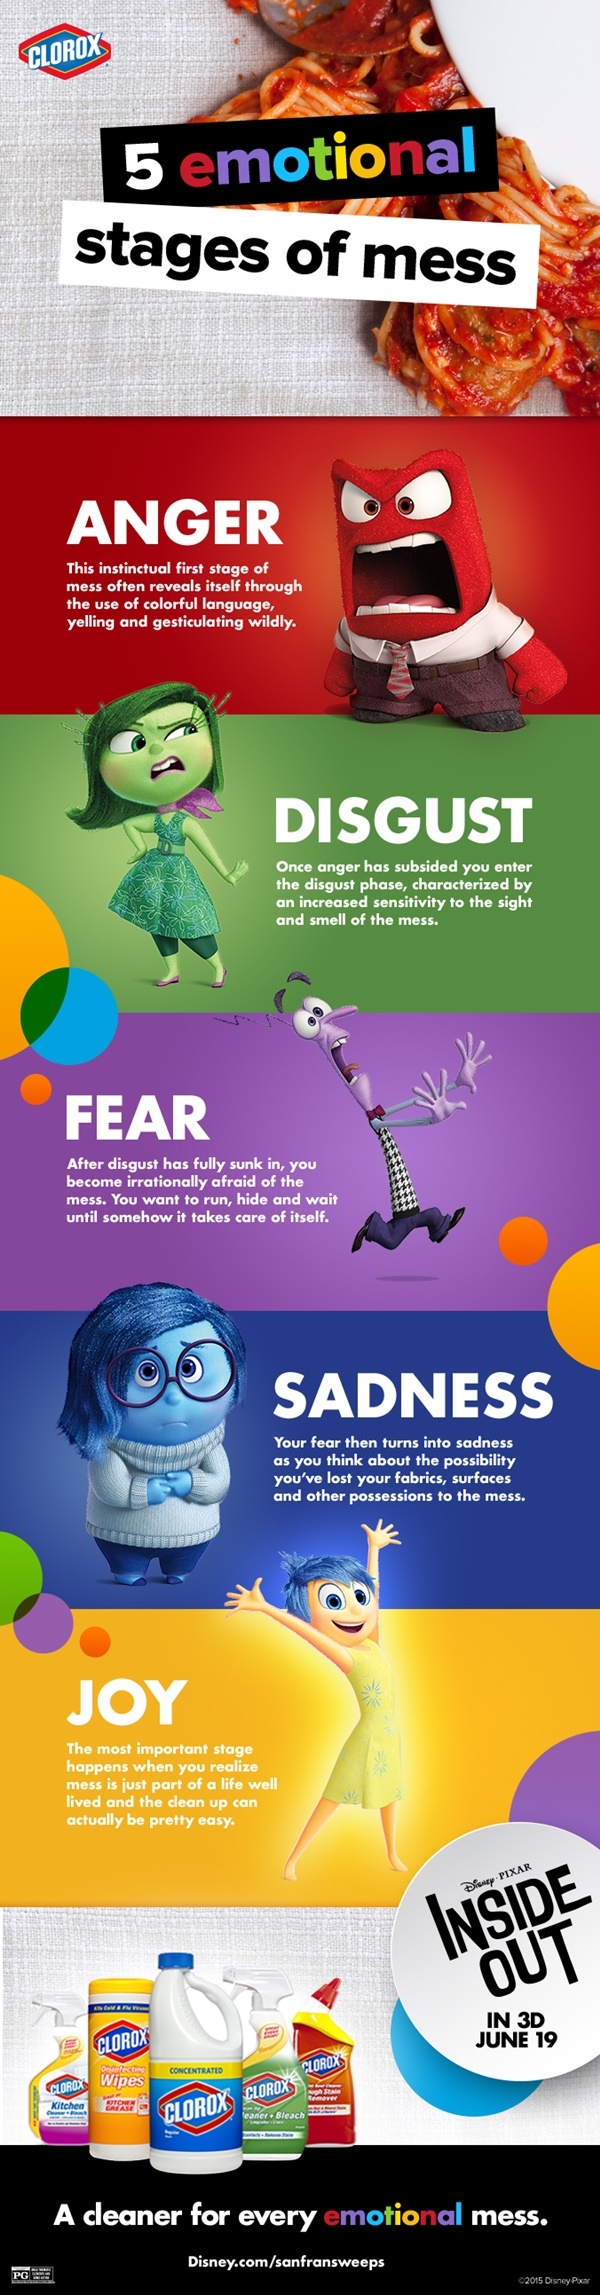 5 emotional stages of mess